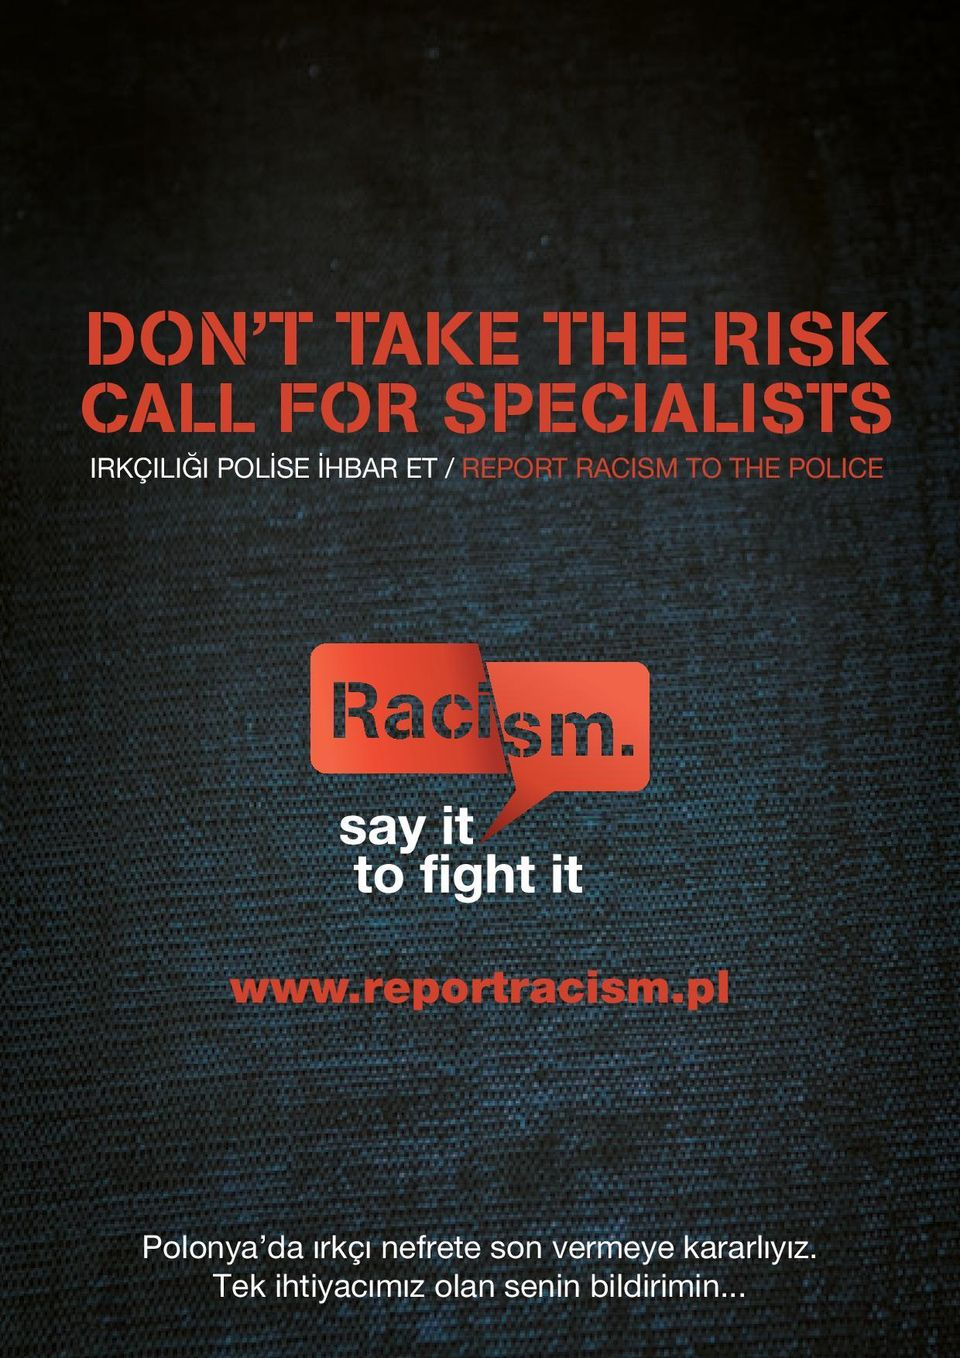 reportracism.